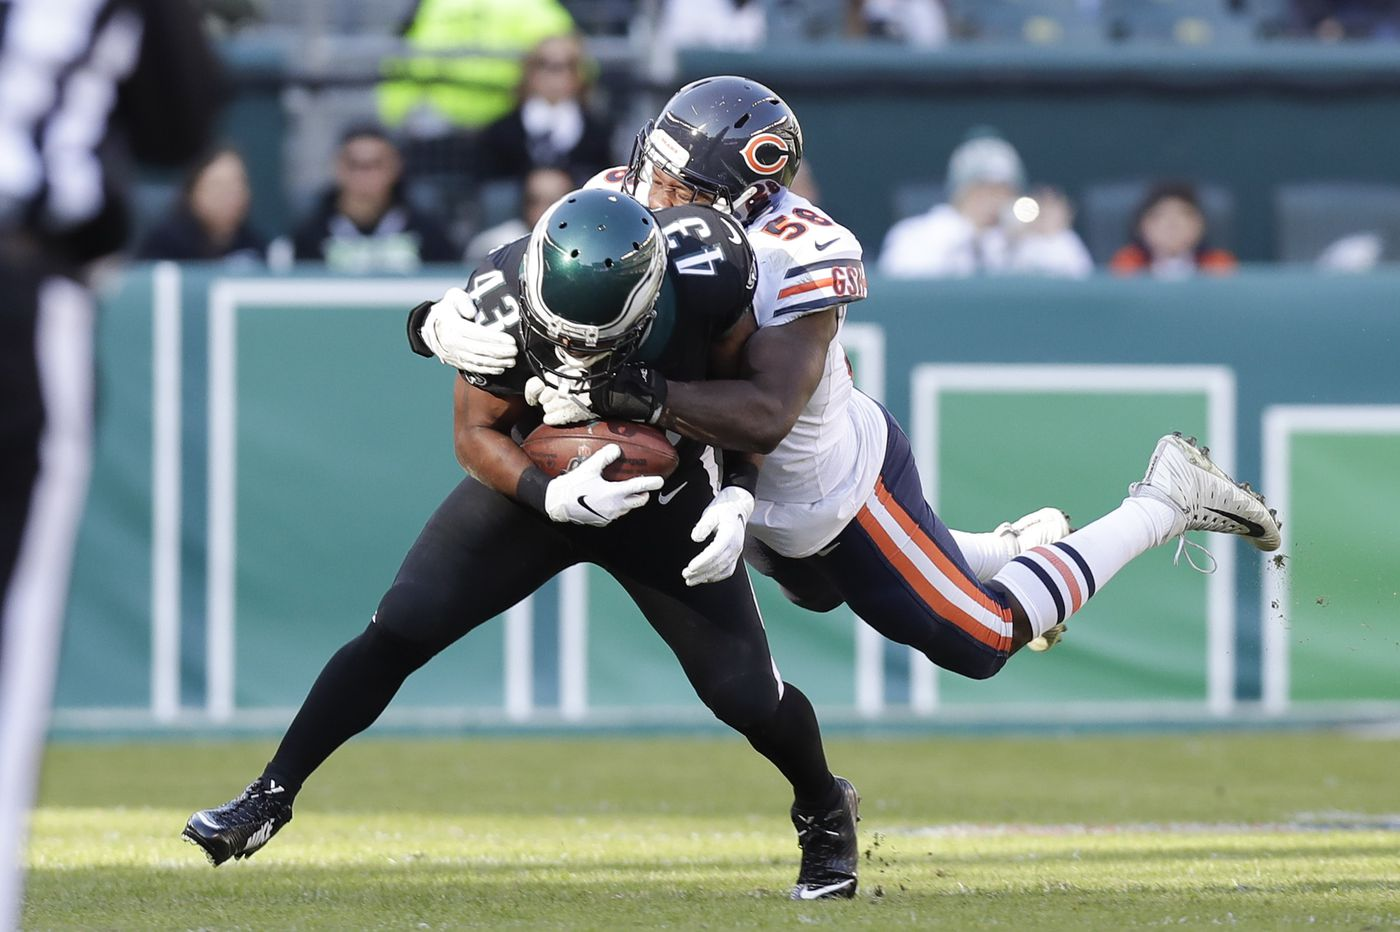 Darren Sproles ruled out for season, as another Eagles gamble on an older player doesn't pay off